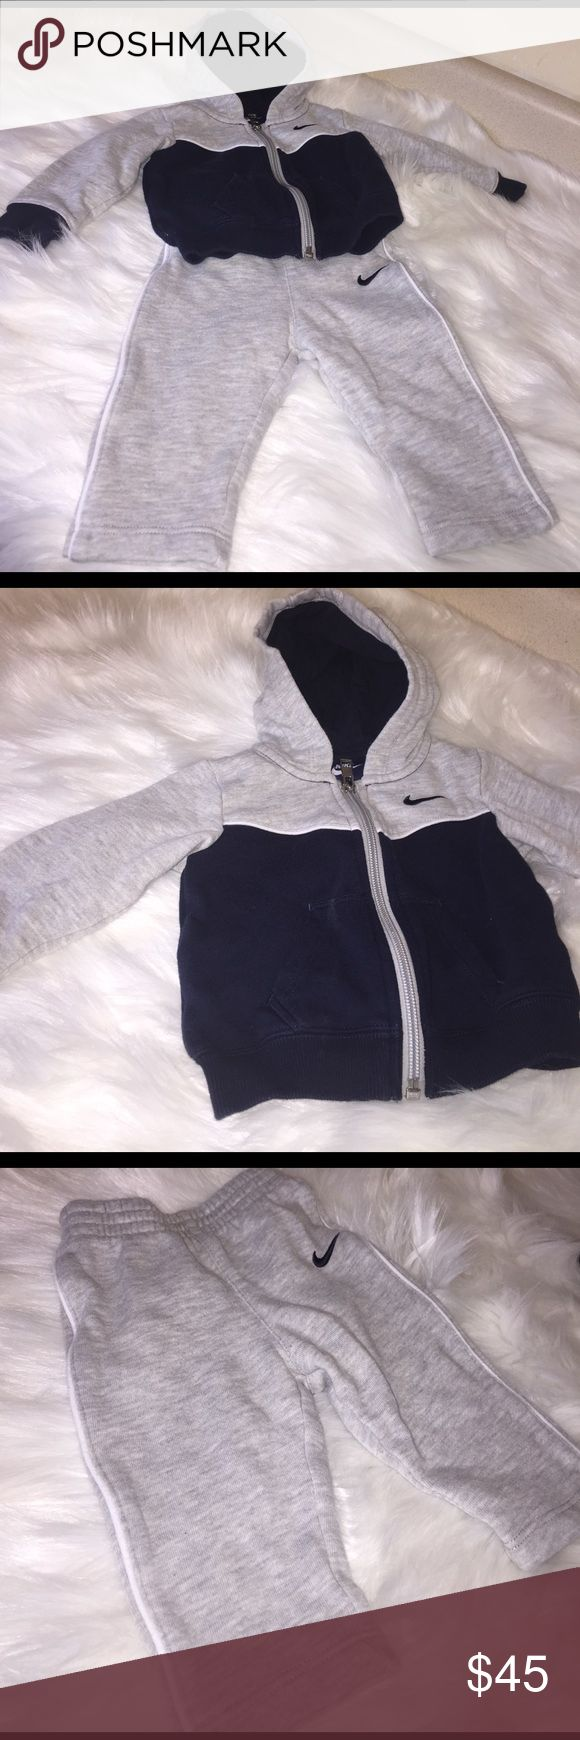 Baby Nike Sweat suit Gently Used Nike Sweat Suit. Navy Blue and grey. Make an offer. Nike Matching Sets